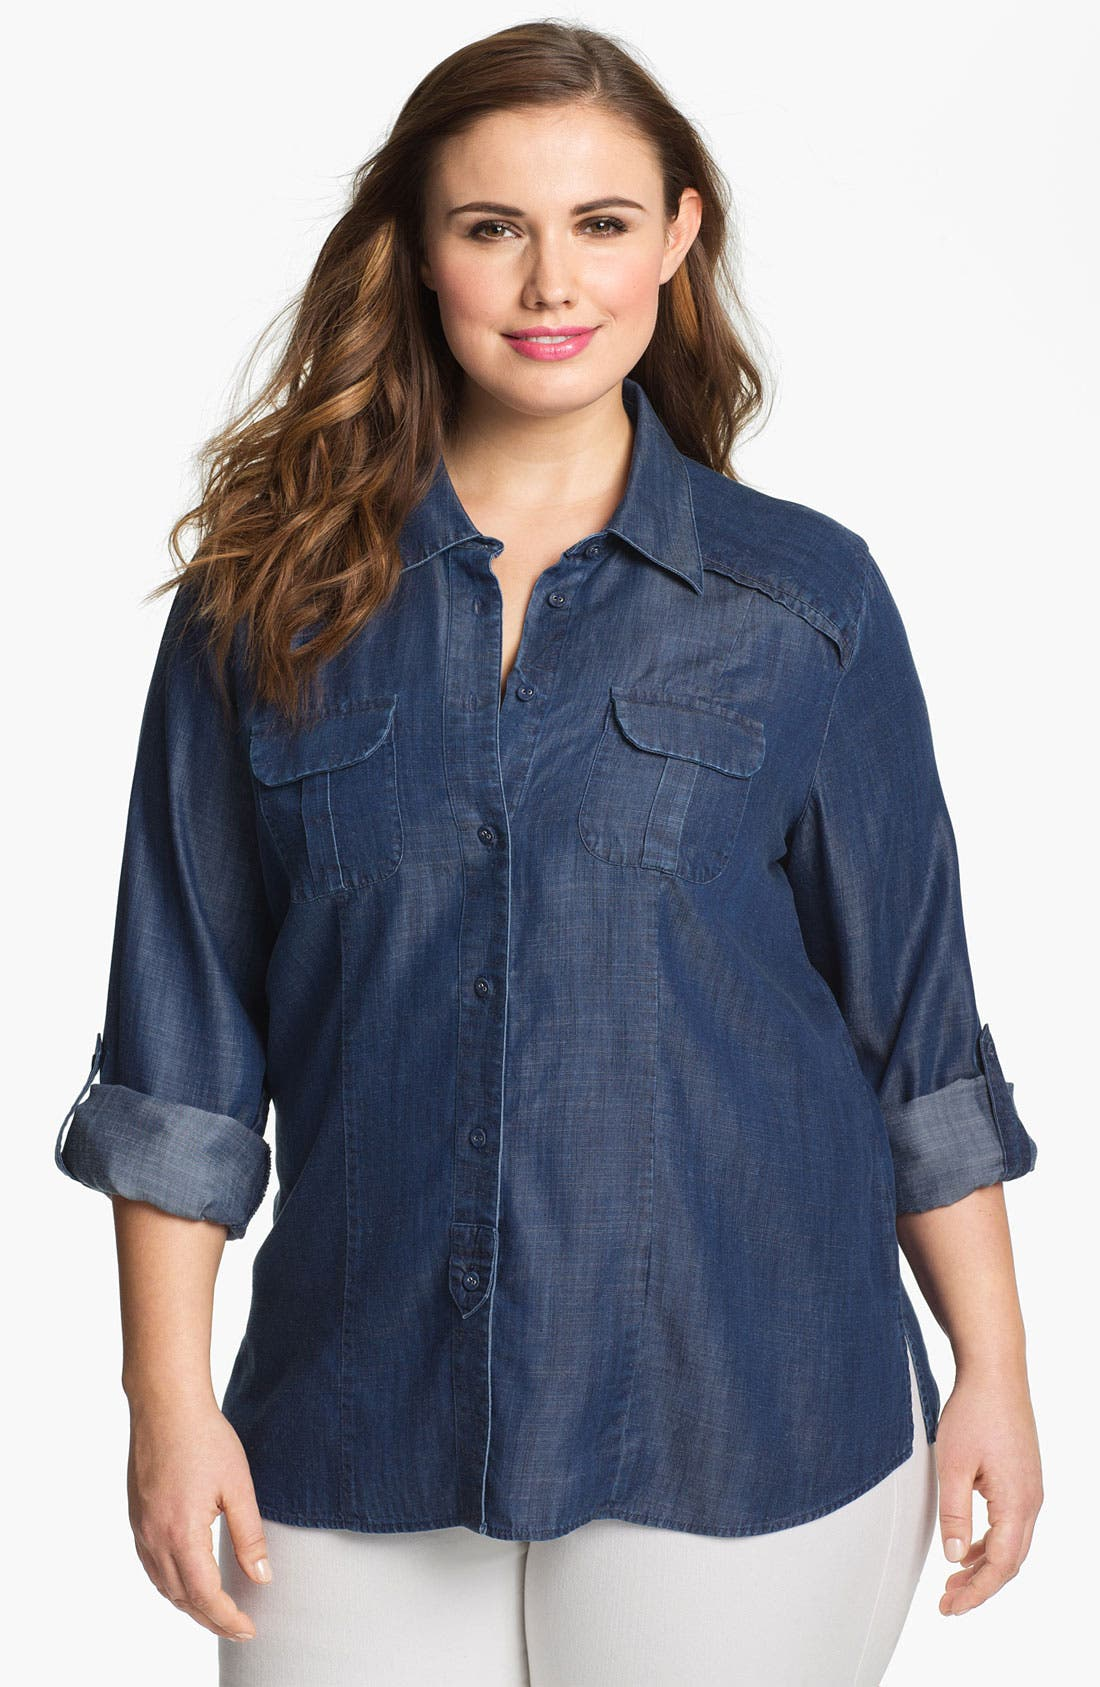 Alternate Image 1 Selected - Foxcroft Long Sleeve Denim Shirt (Plus)